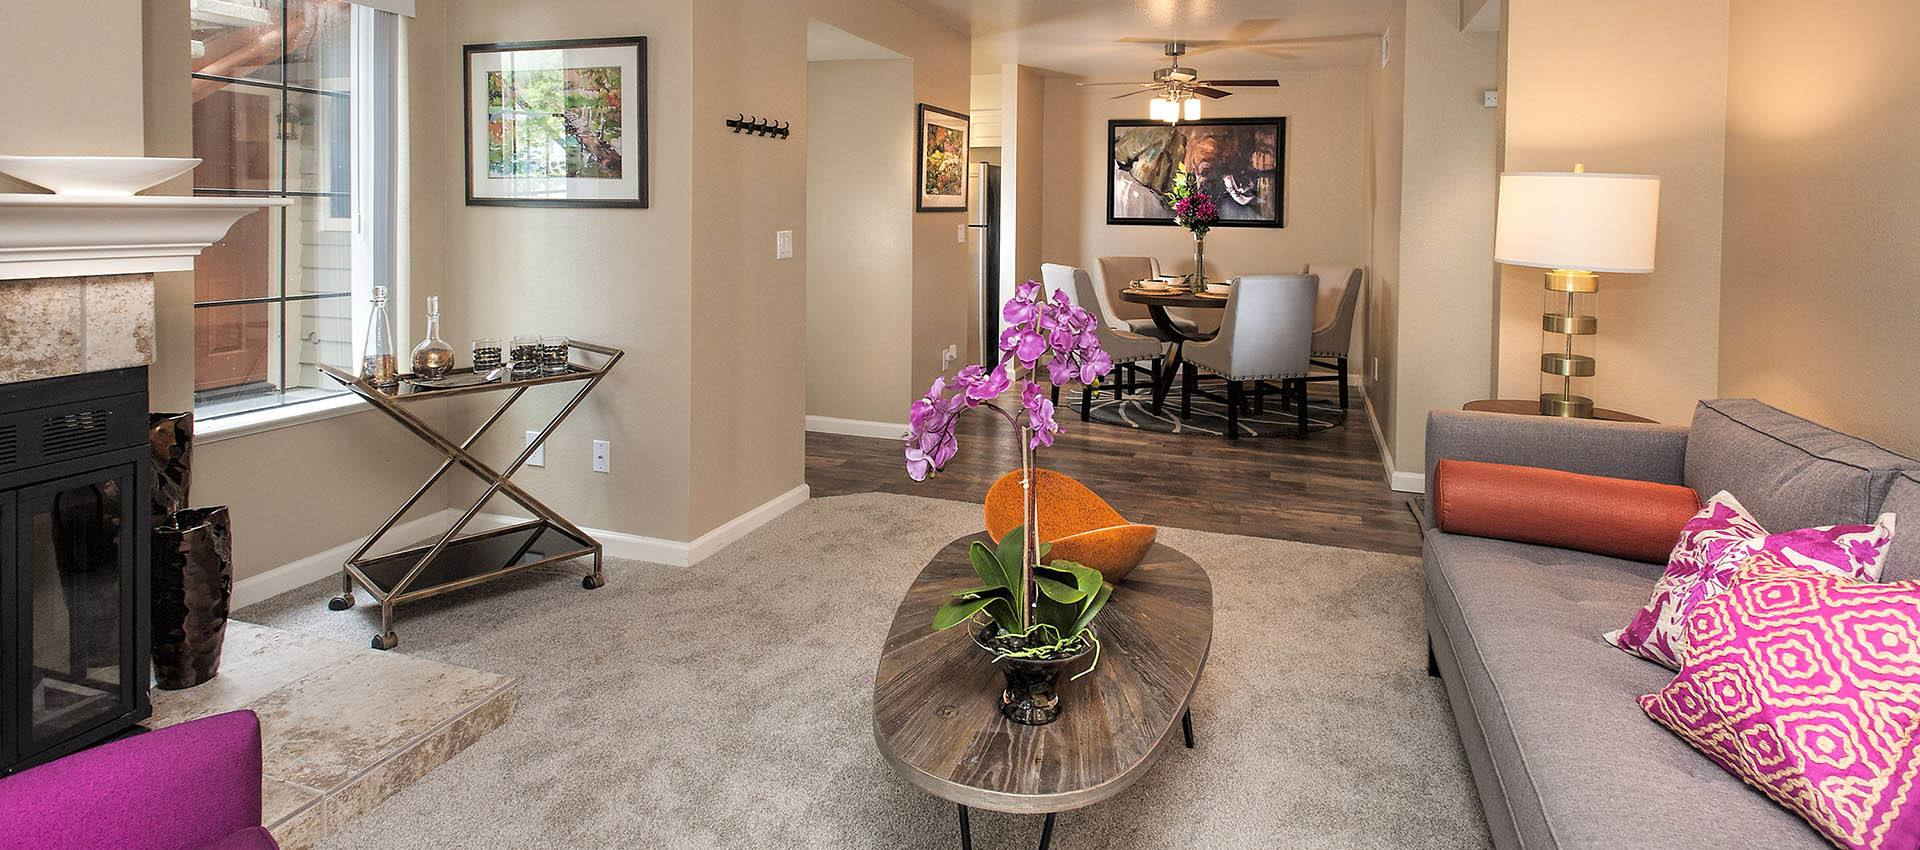 Spacious Lving Room With Bright Decorations at Hidden Lake Condominium Rentals in Sacramento, CA